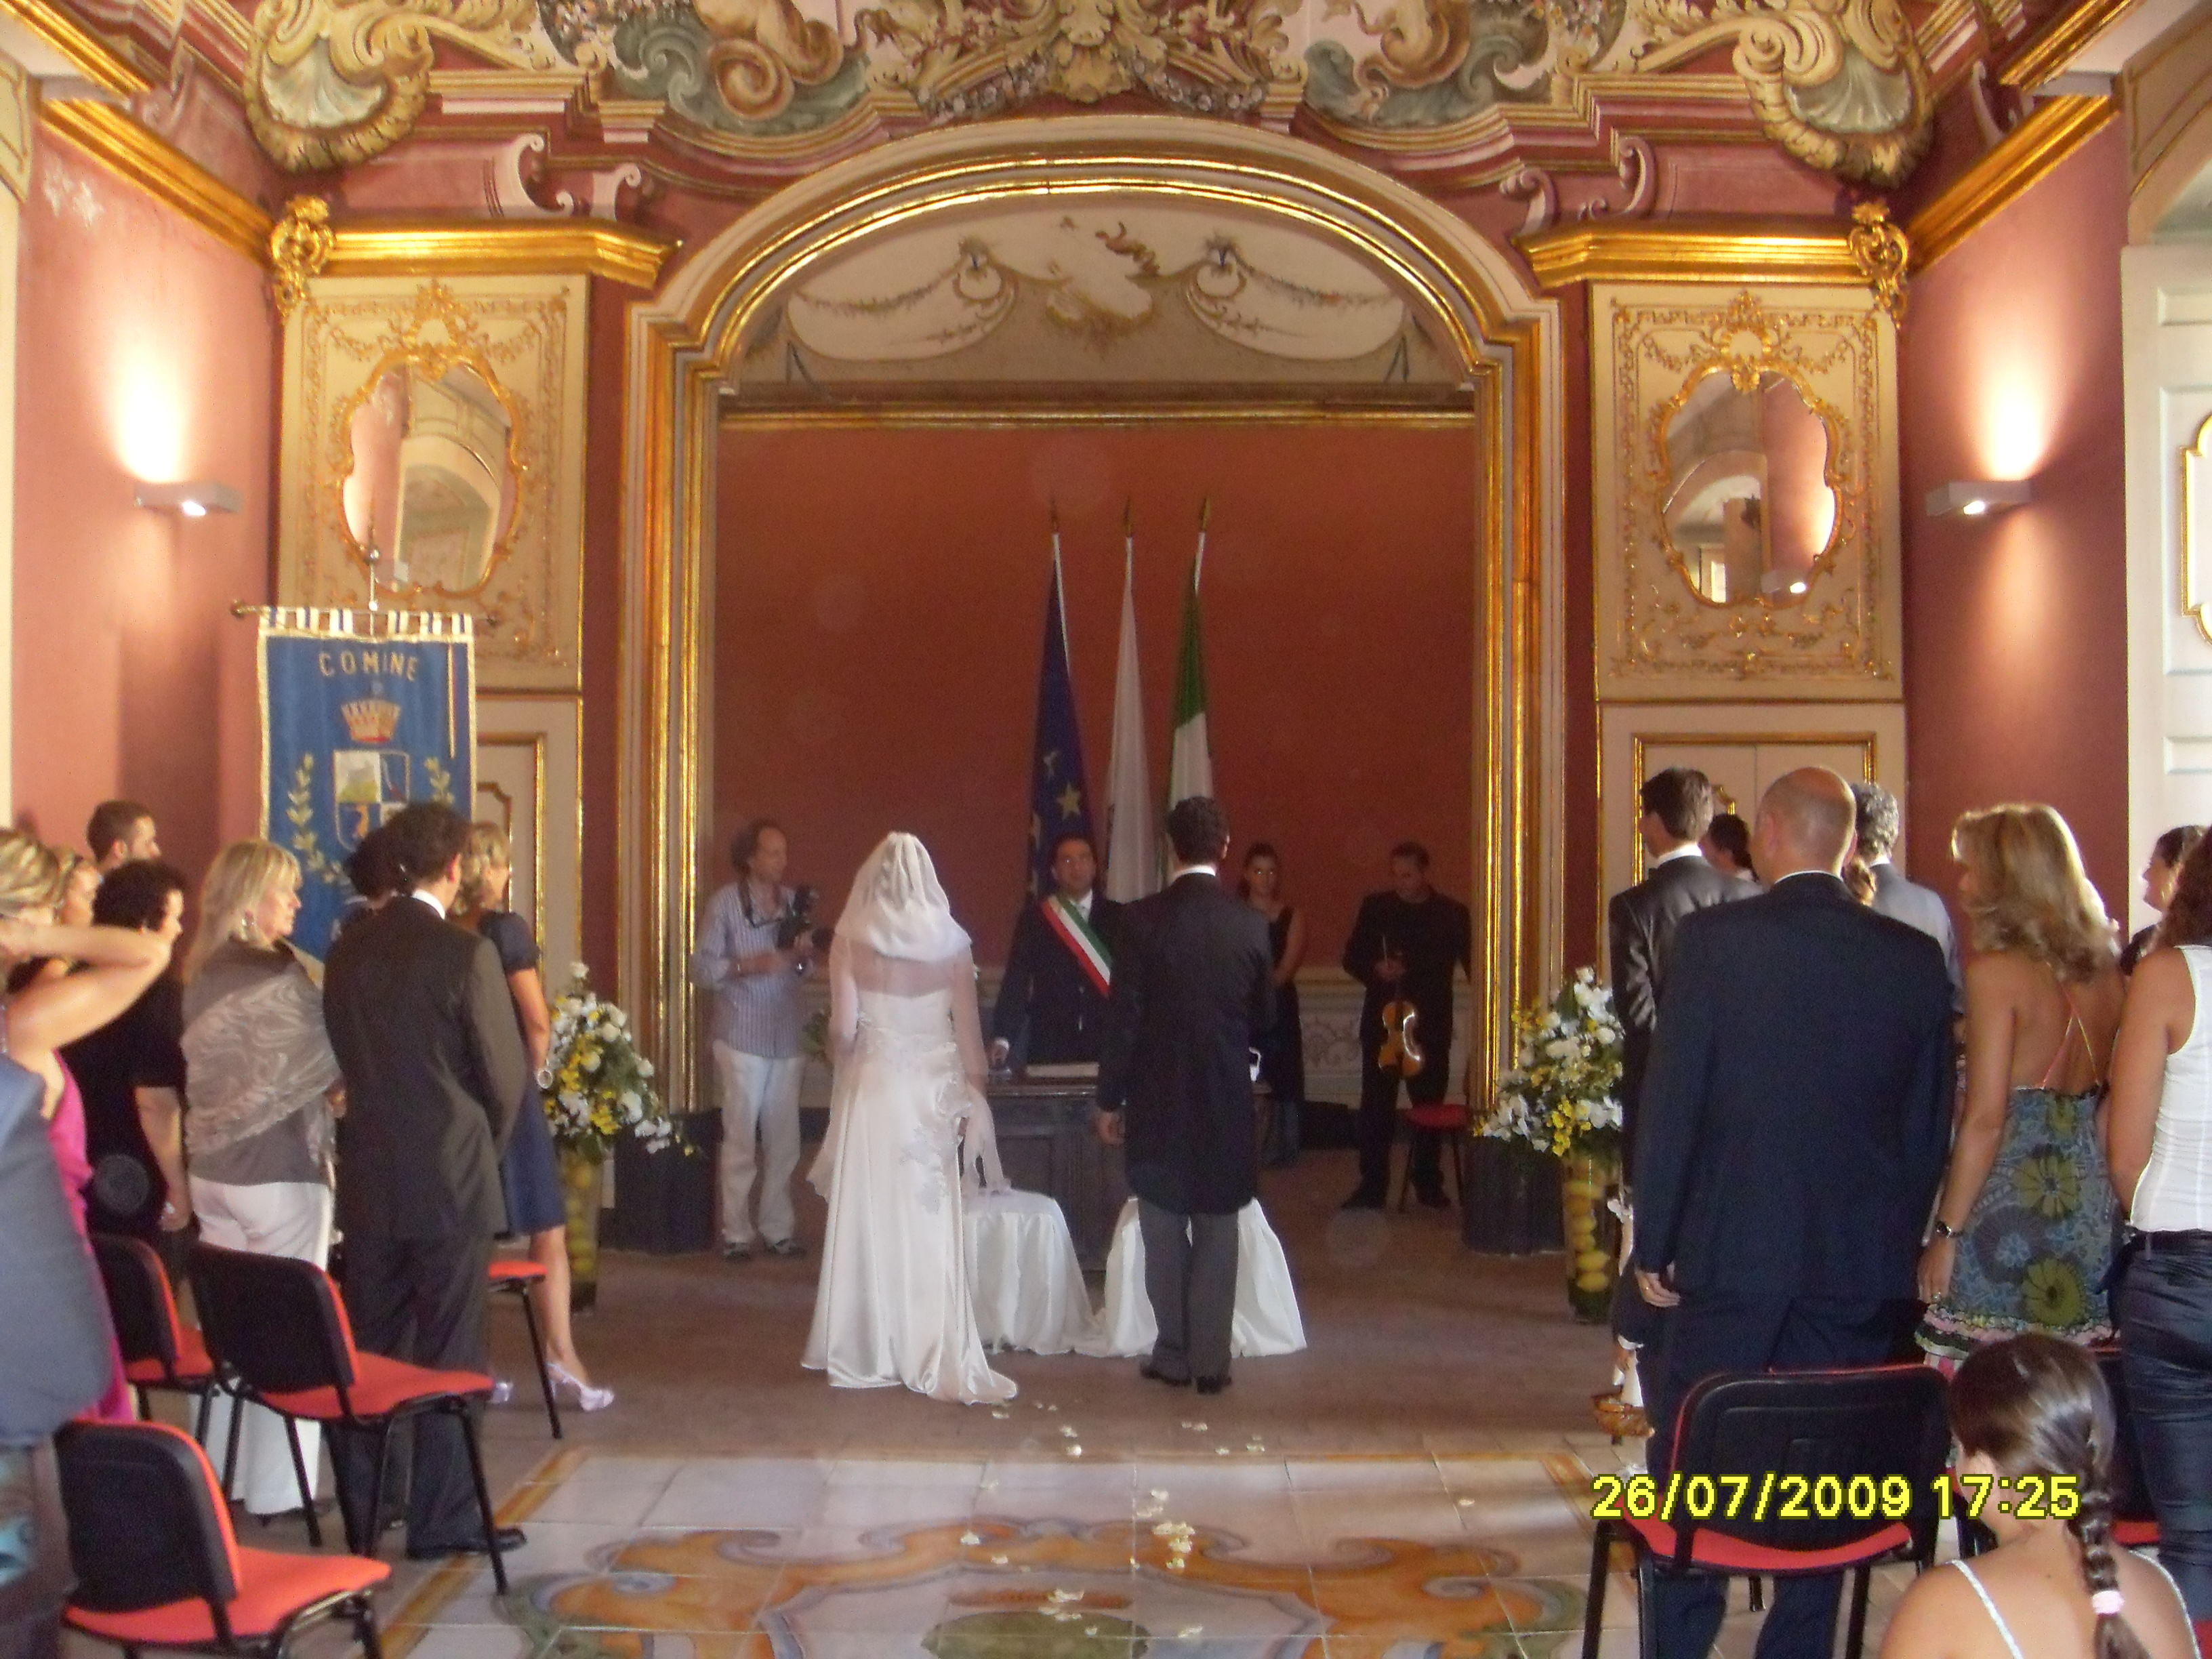 http://www.weddingamalfi.com/wp-content/uploads/Enza-and-Mario-civil-wedding-ceremony.jpg